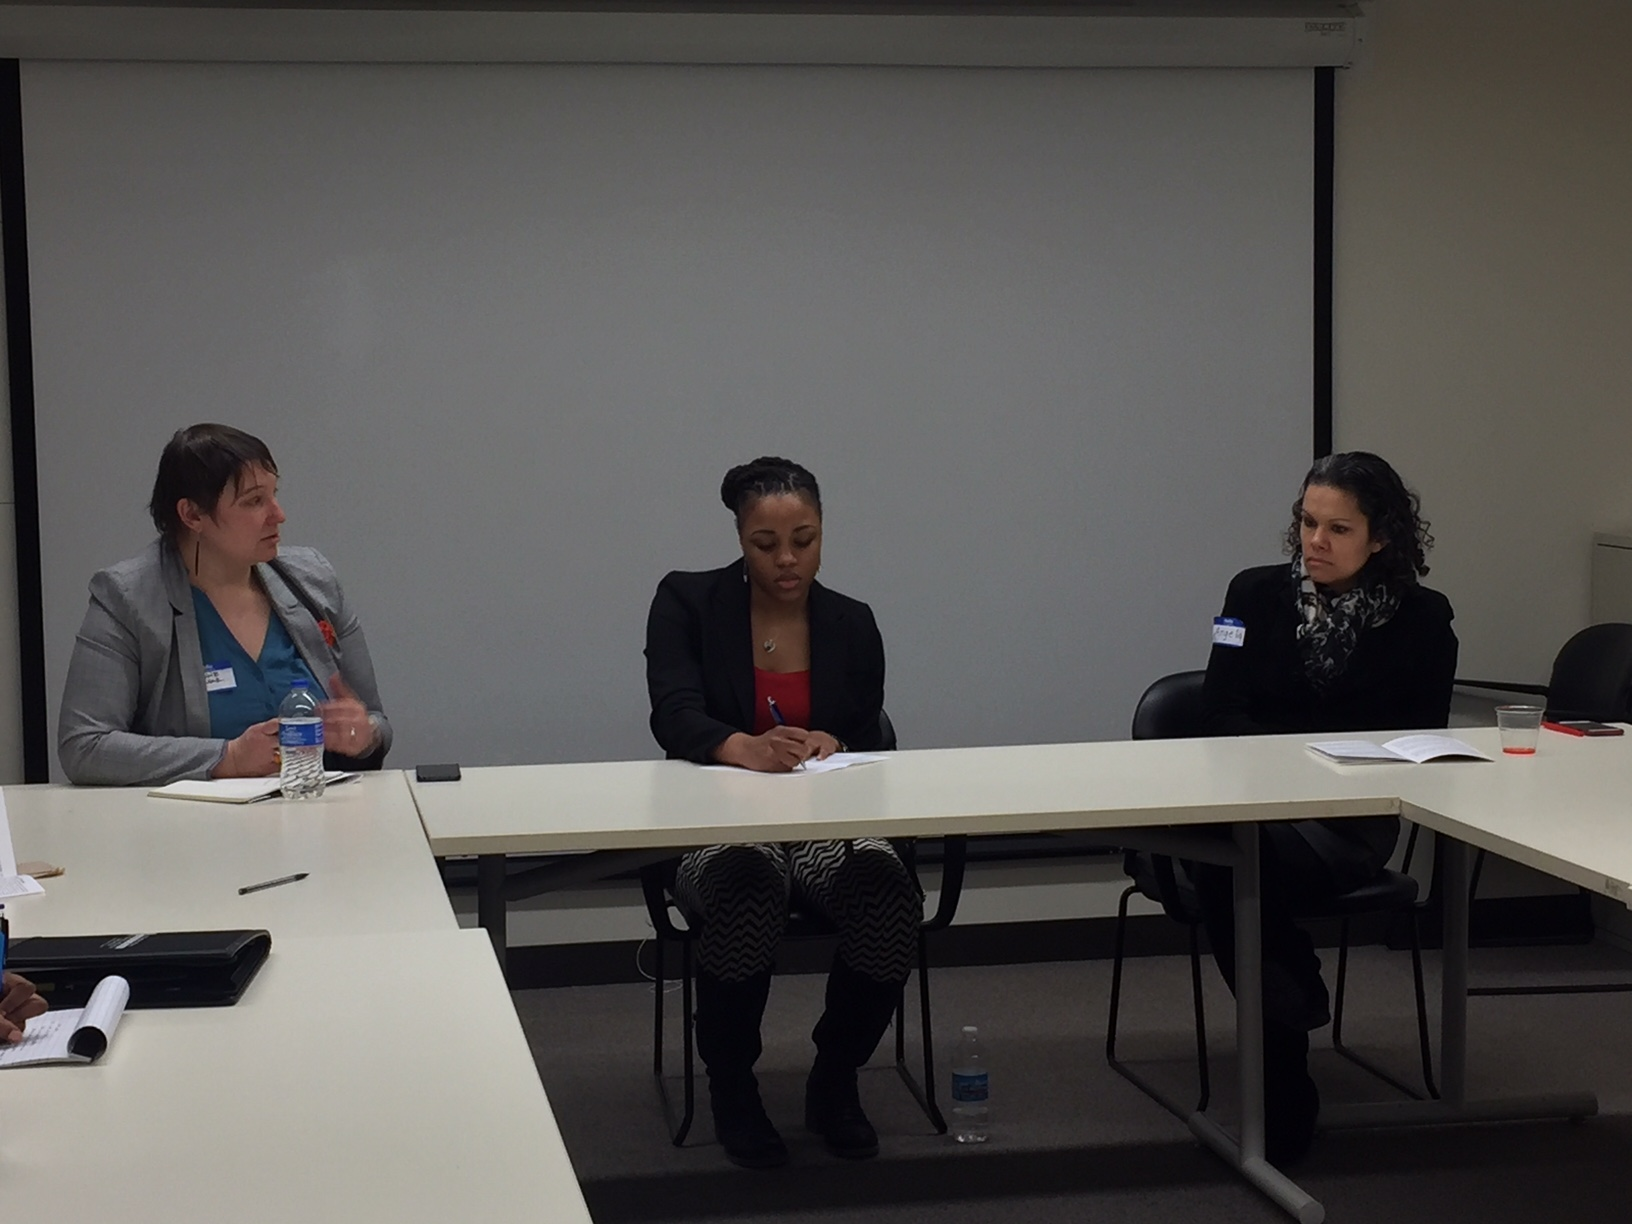 Chyanne alongside panel members Tiara Hughes, middle, works at SOM and Angela King, right, (NOMAS advisor and Project Manager at Facilities & Services at UIUC).